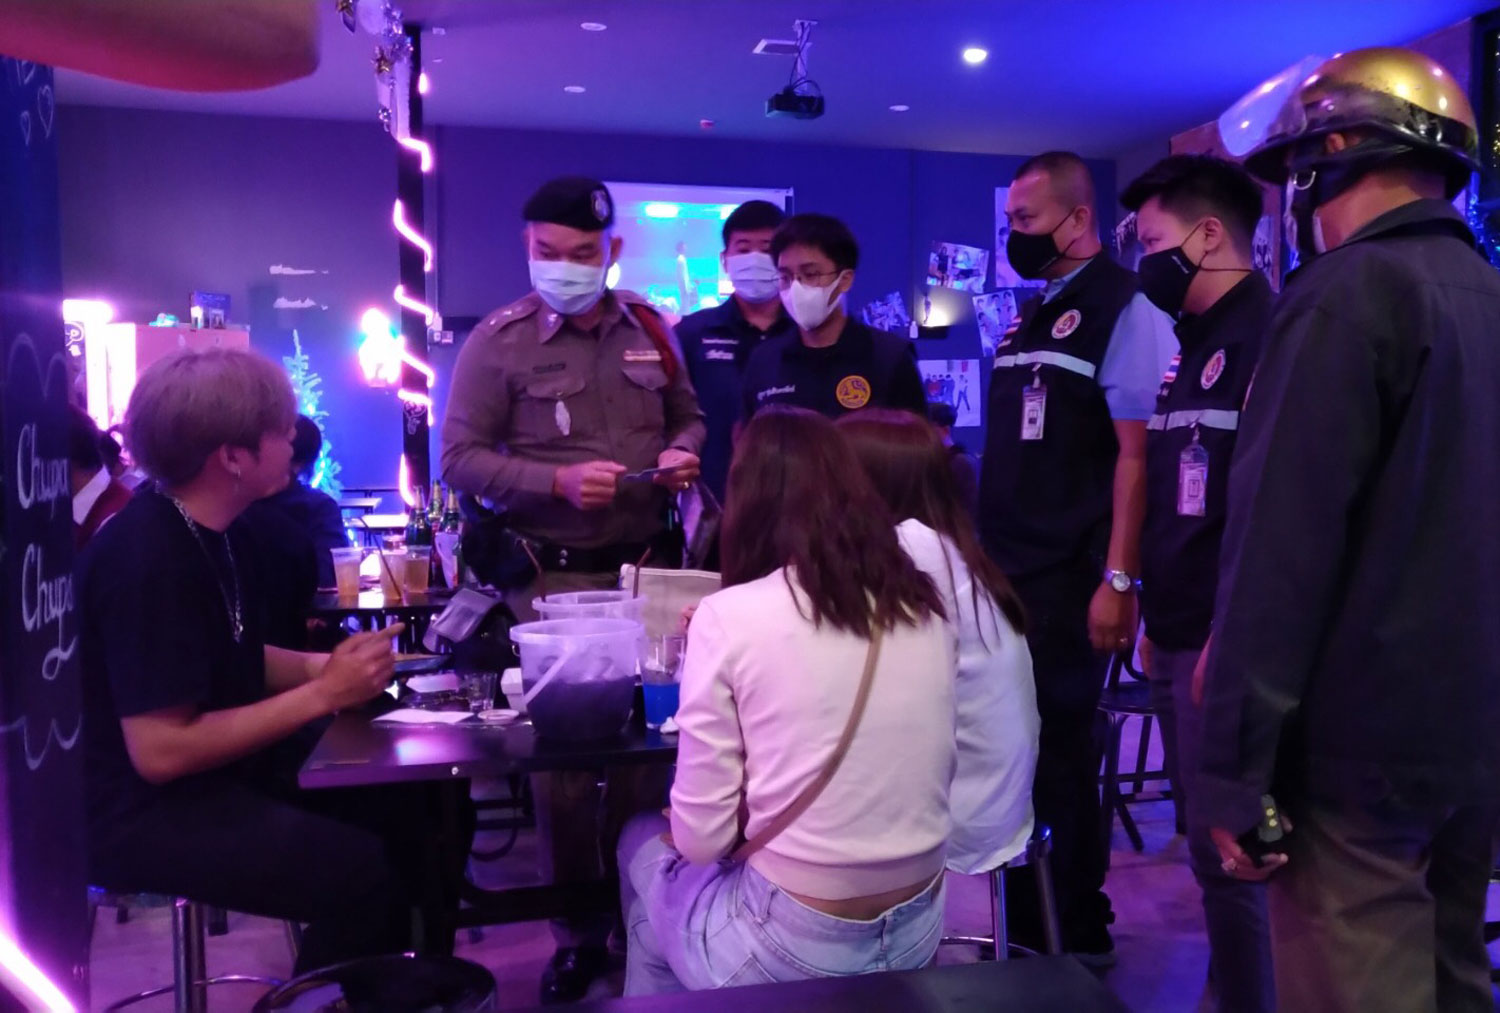 Police inspect a pub in Chiang Mai on Wednesday night. (Photo: Panumet Tanraksa)